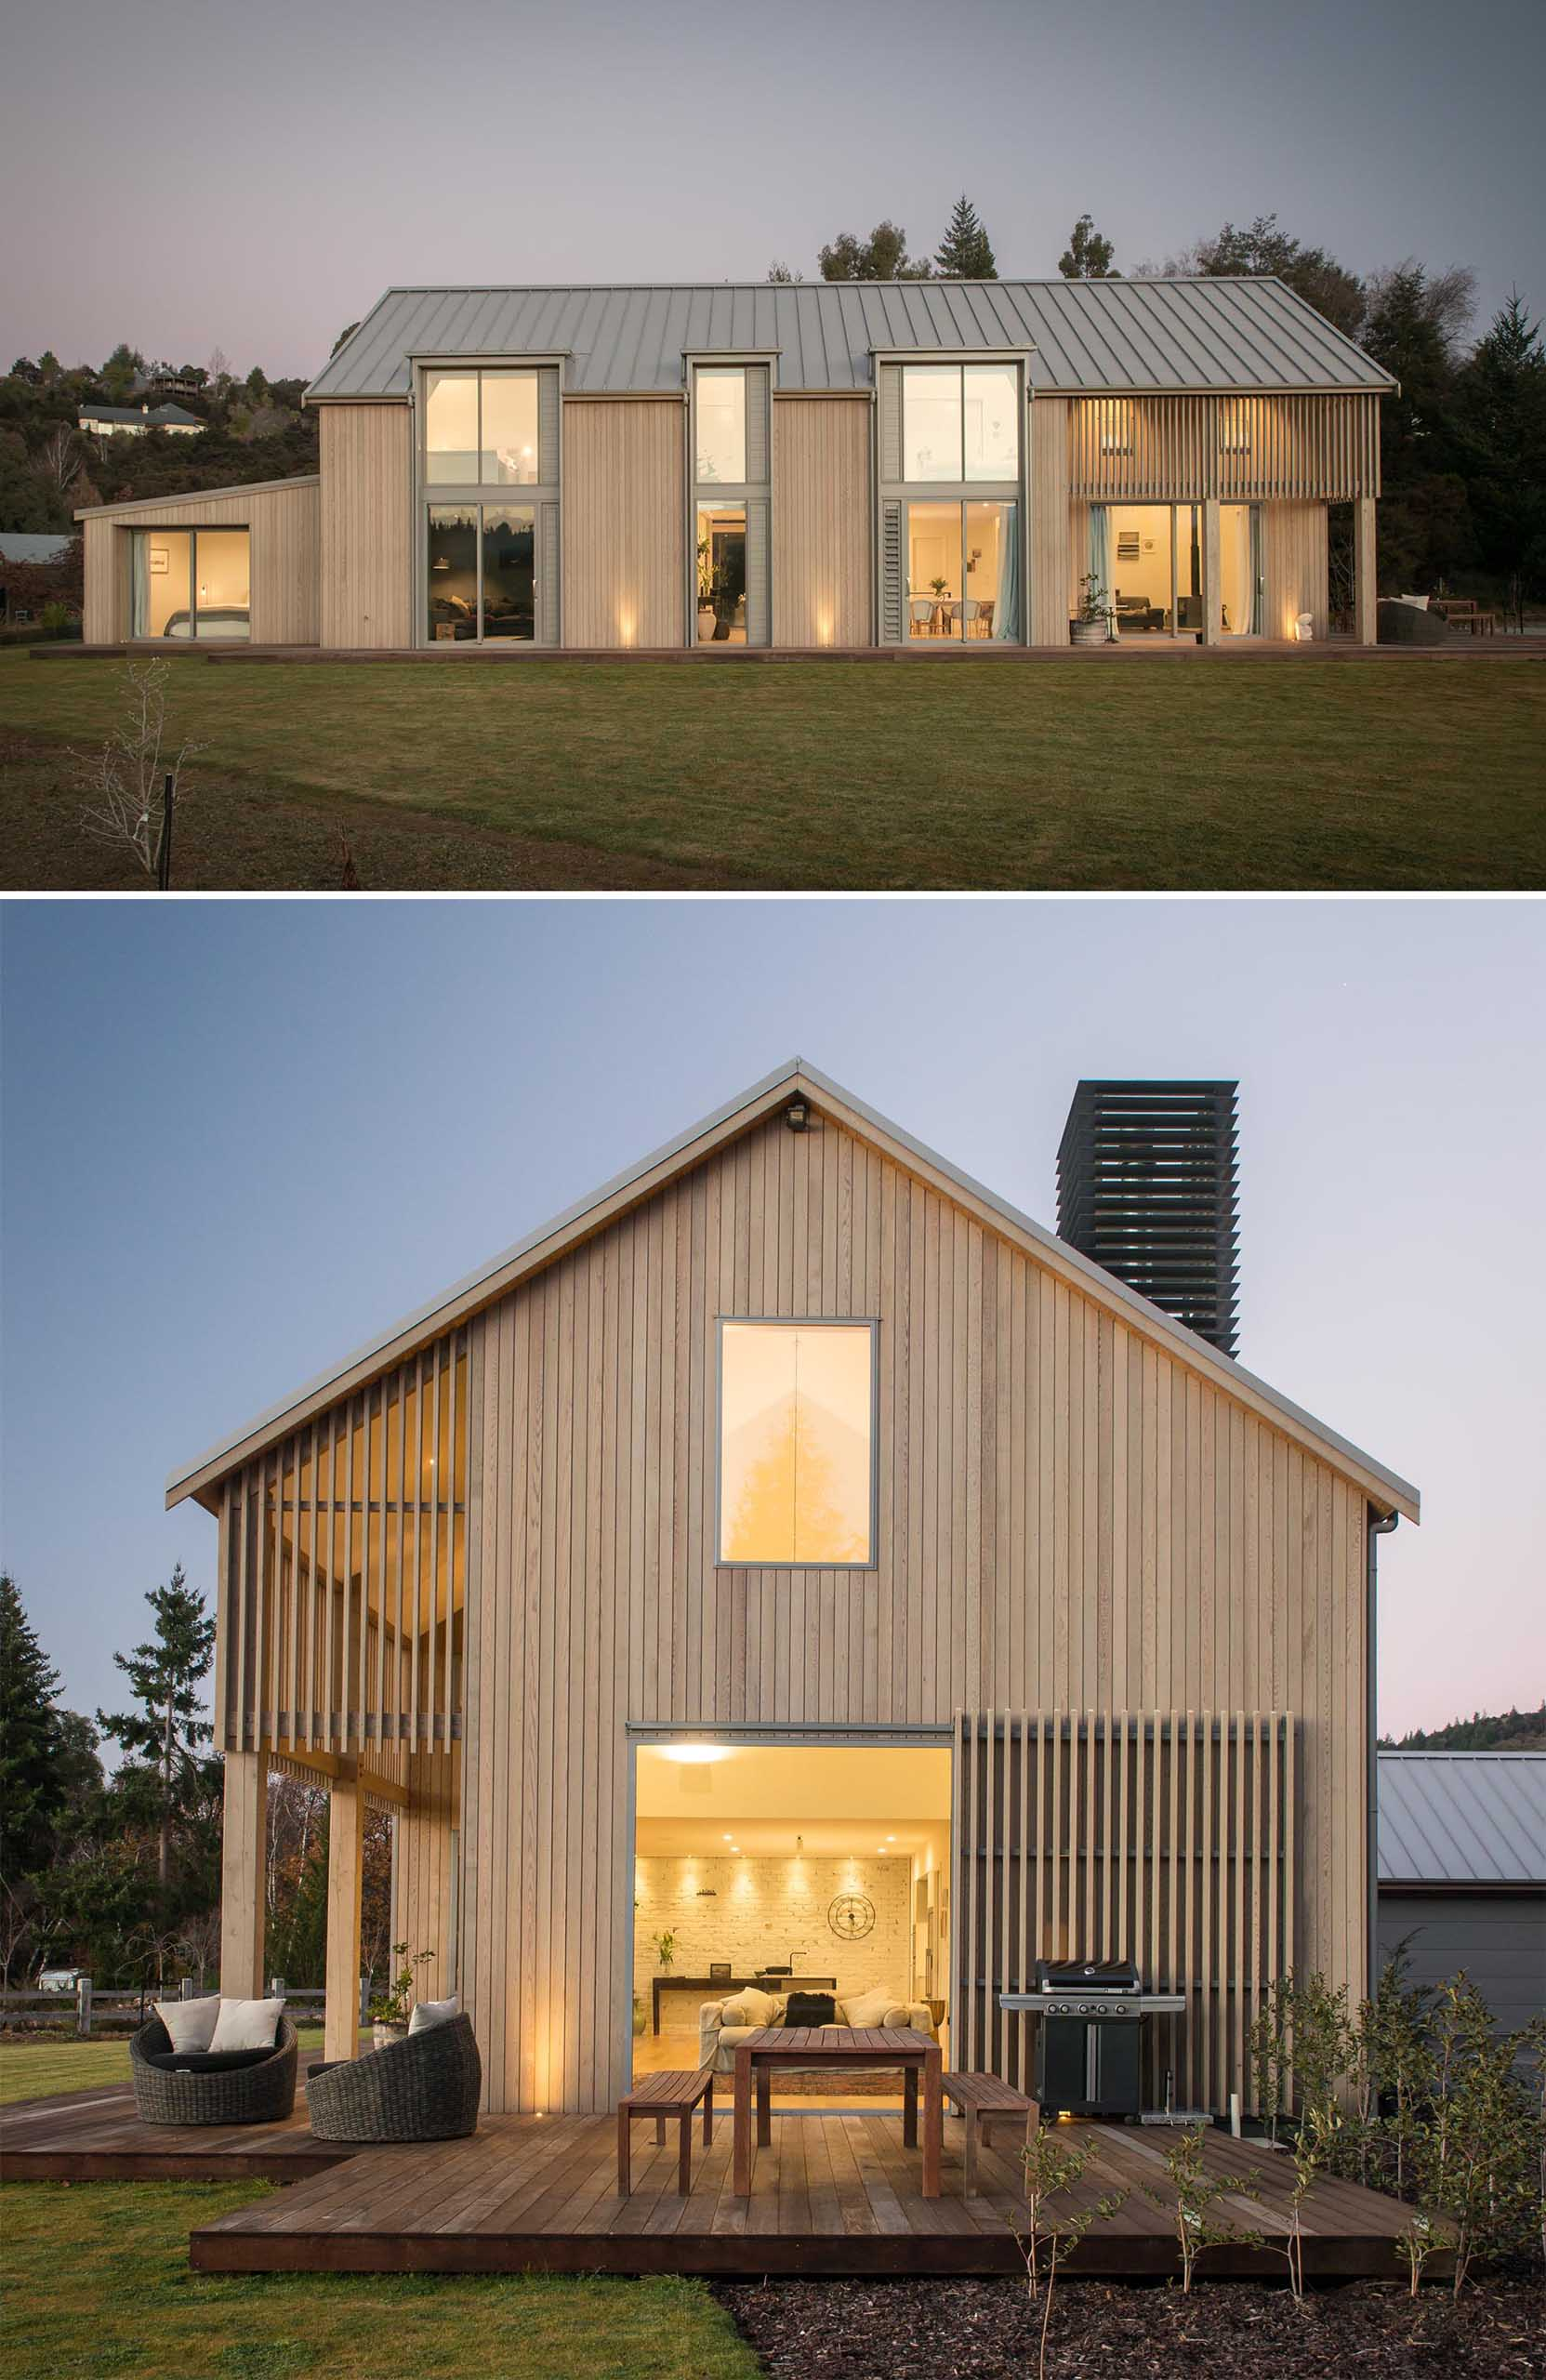 A contemporary barn-inspired home that has an exterior of pale timber tones, a sloped metal roof, and a shiplap ceiling.